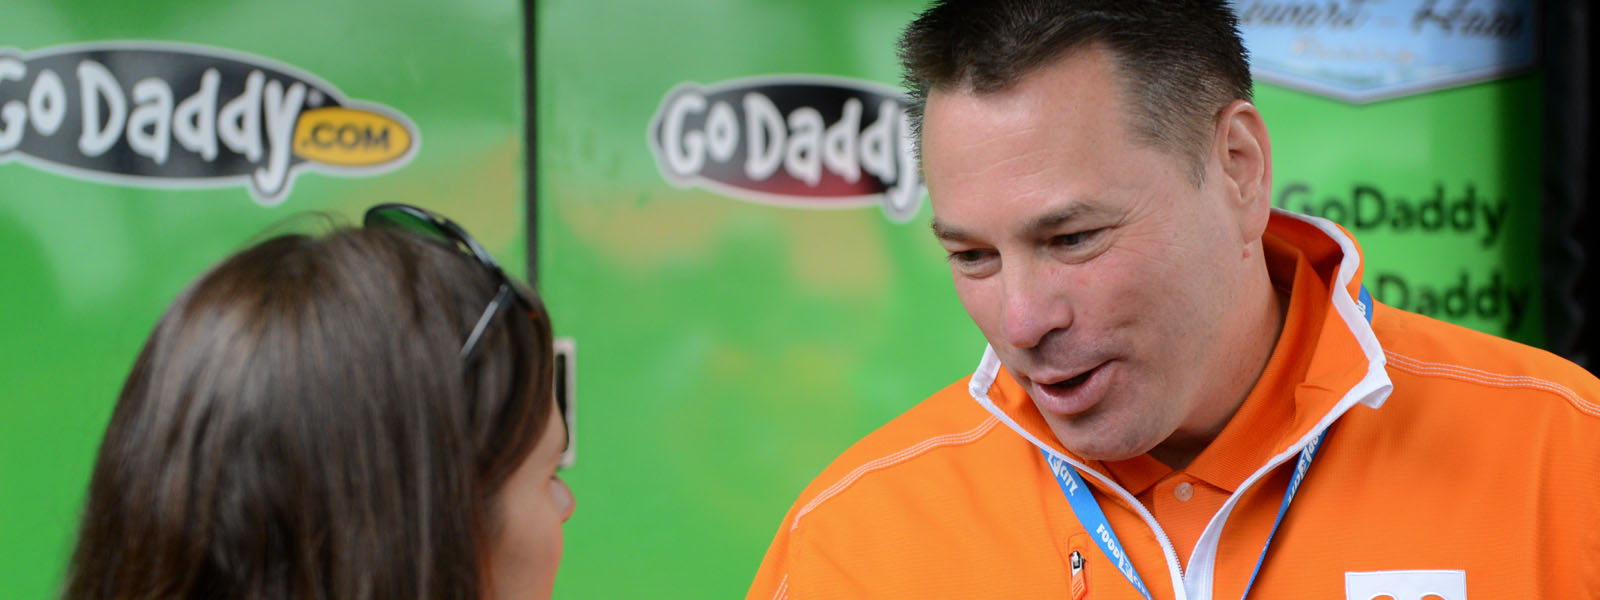 Butch Jones and Danica Patrick